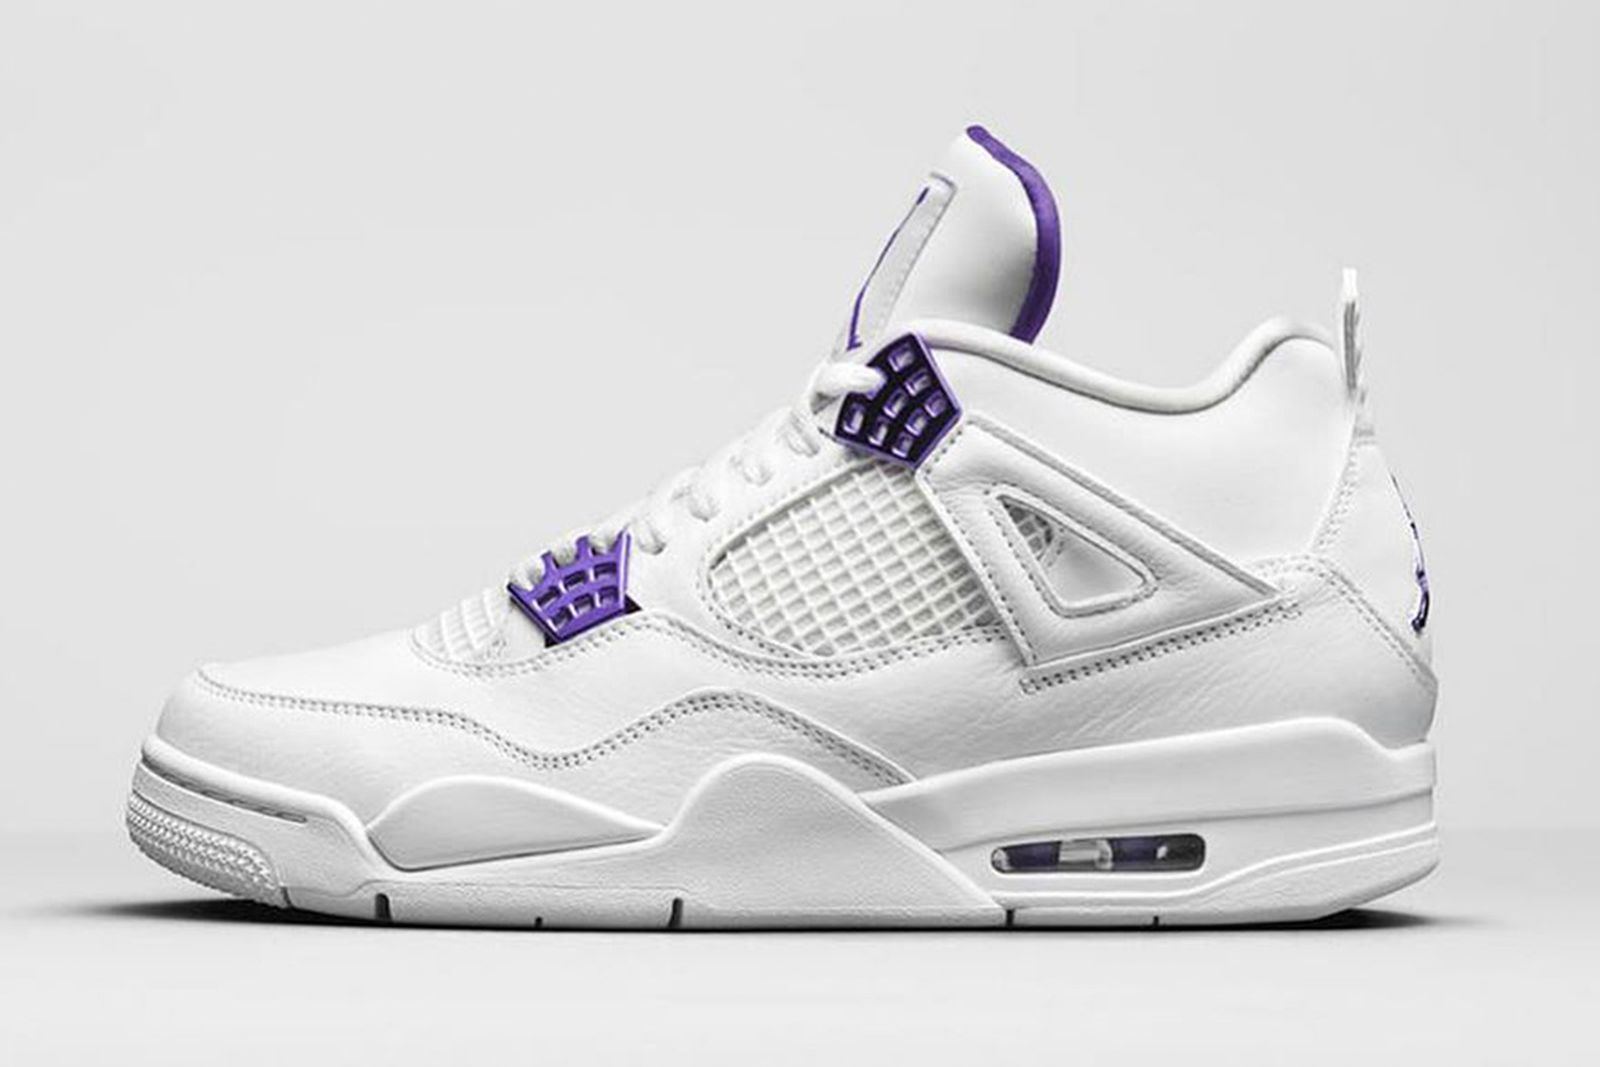 nike air jordan 4 metallic purple product shot